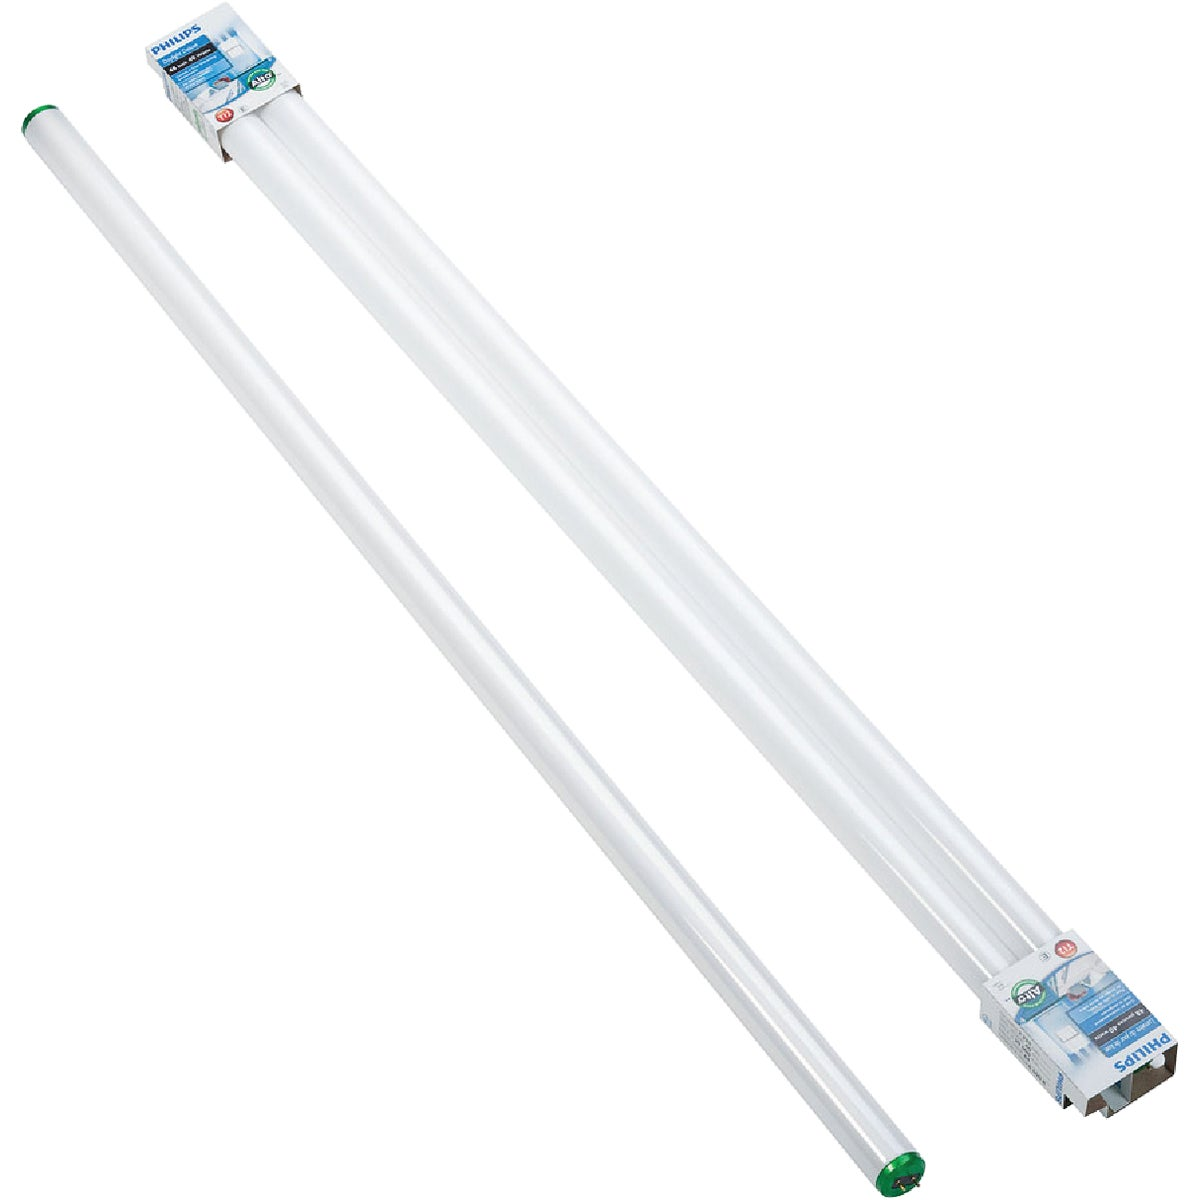 40W 4' T12D FLUOR TUBE - 66654 by G E Lighting